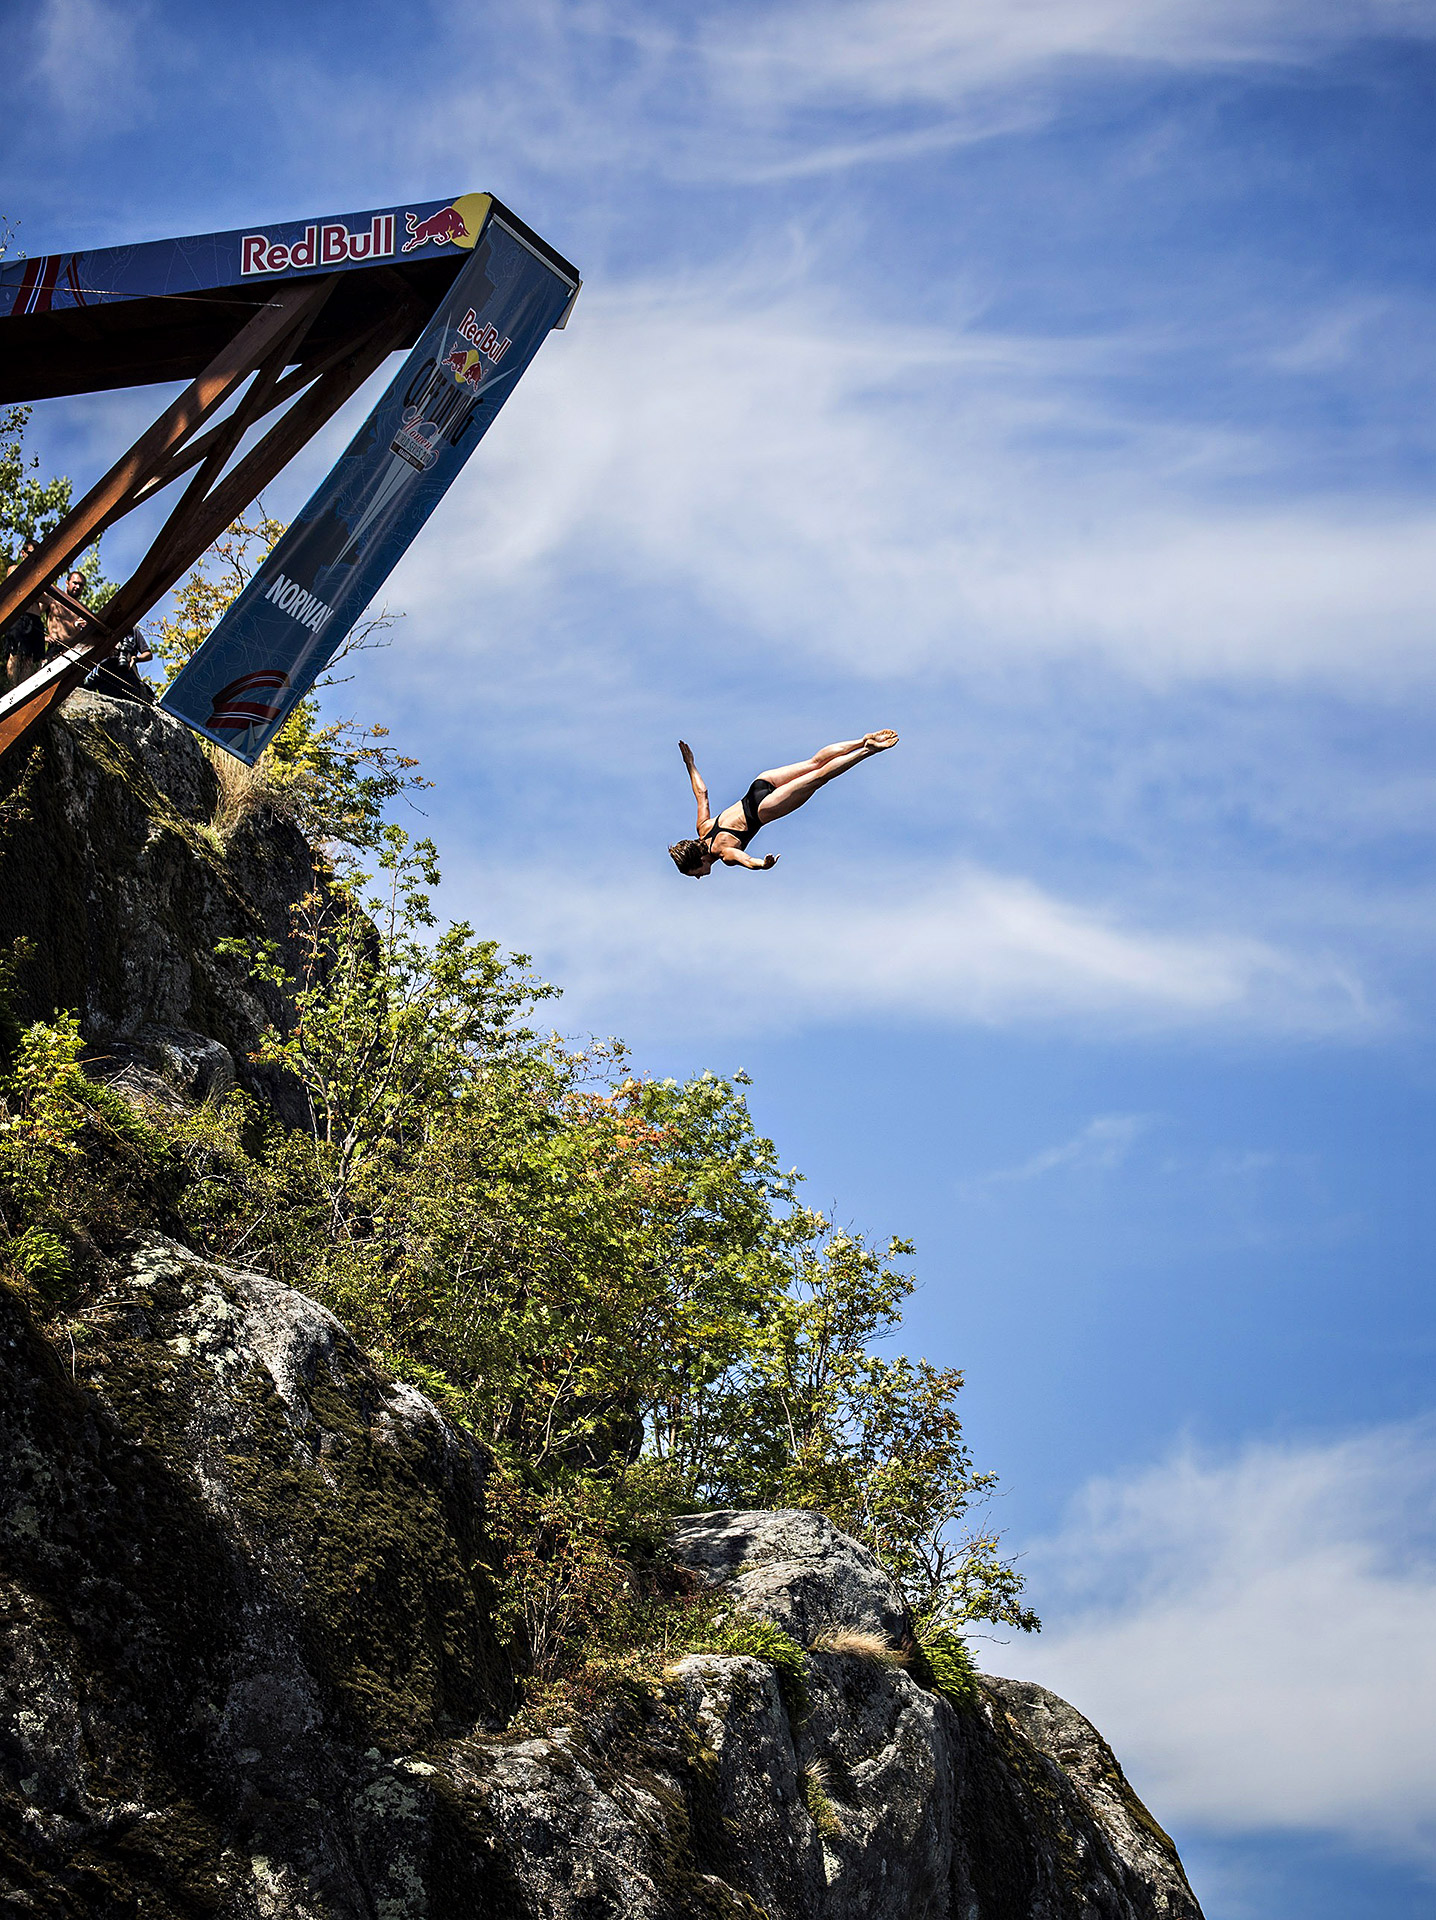 Ginger Huber of the U.S. dives from the 20-meter platform during the fourth stop of the Red Bull Cliff Diving World Series in Kragero, Norway.